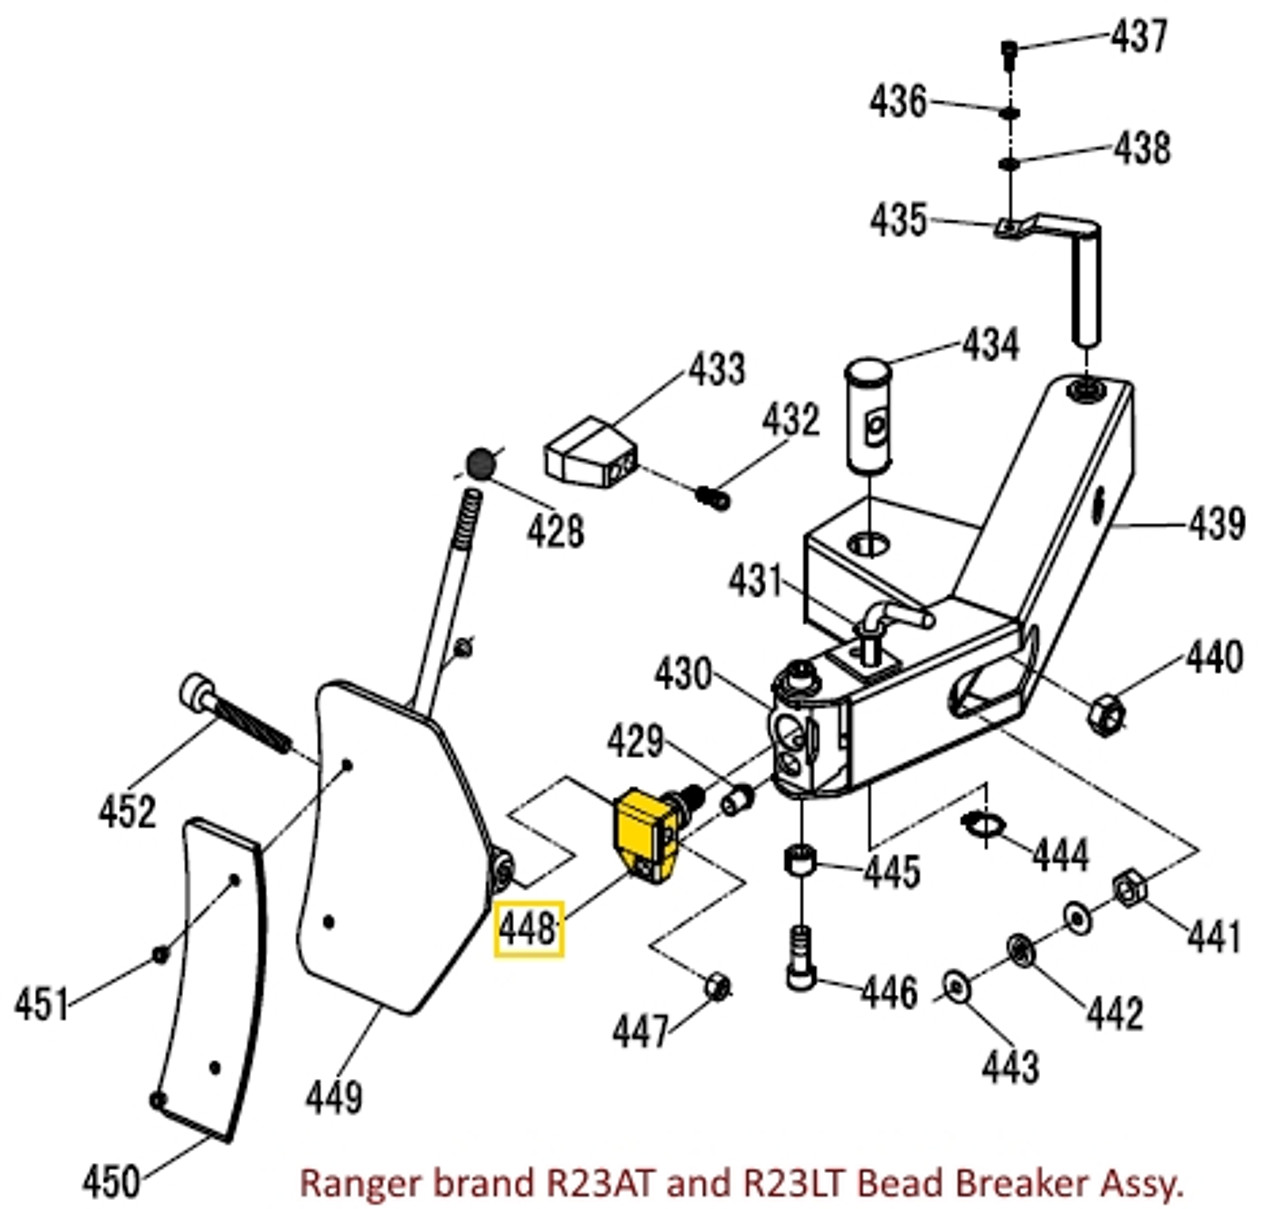 Illustration of 5327738 Bead Breaker Blade ADAPTER for Ranger R23AT and R23LT Tire Changers.